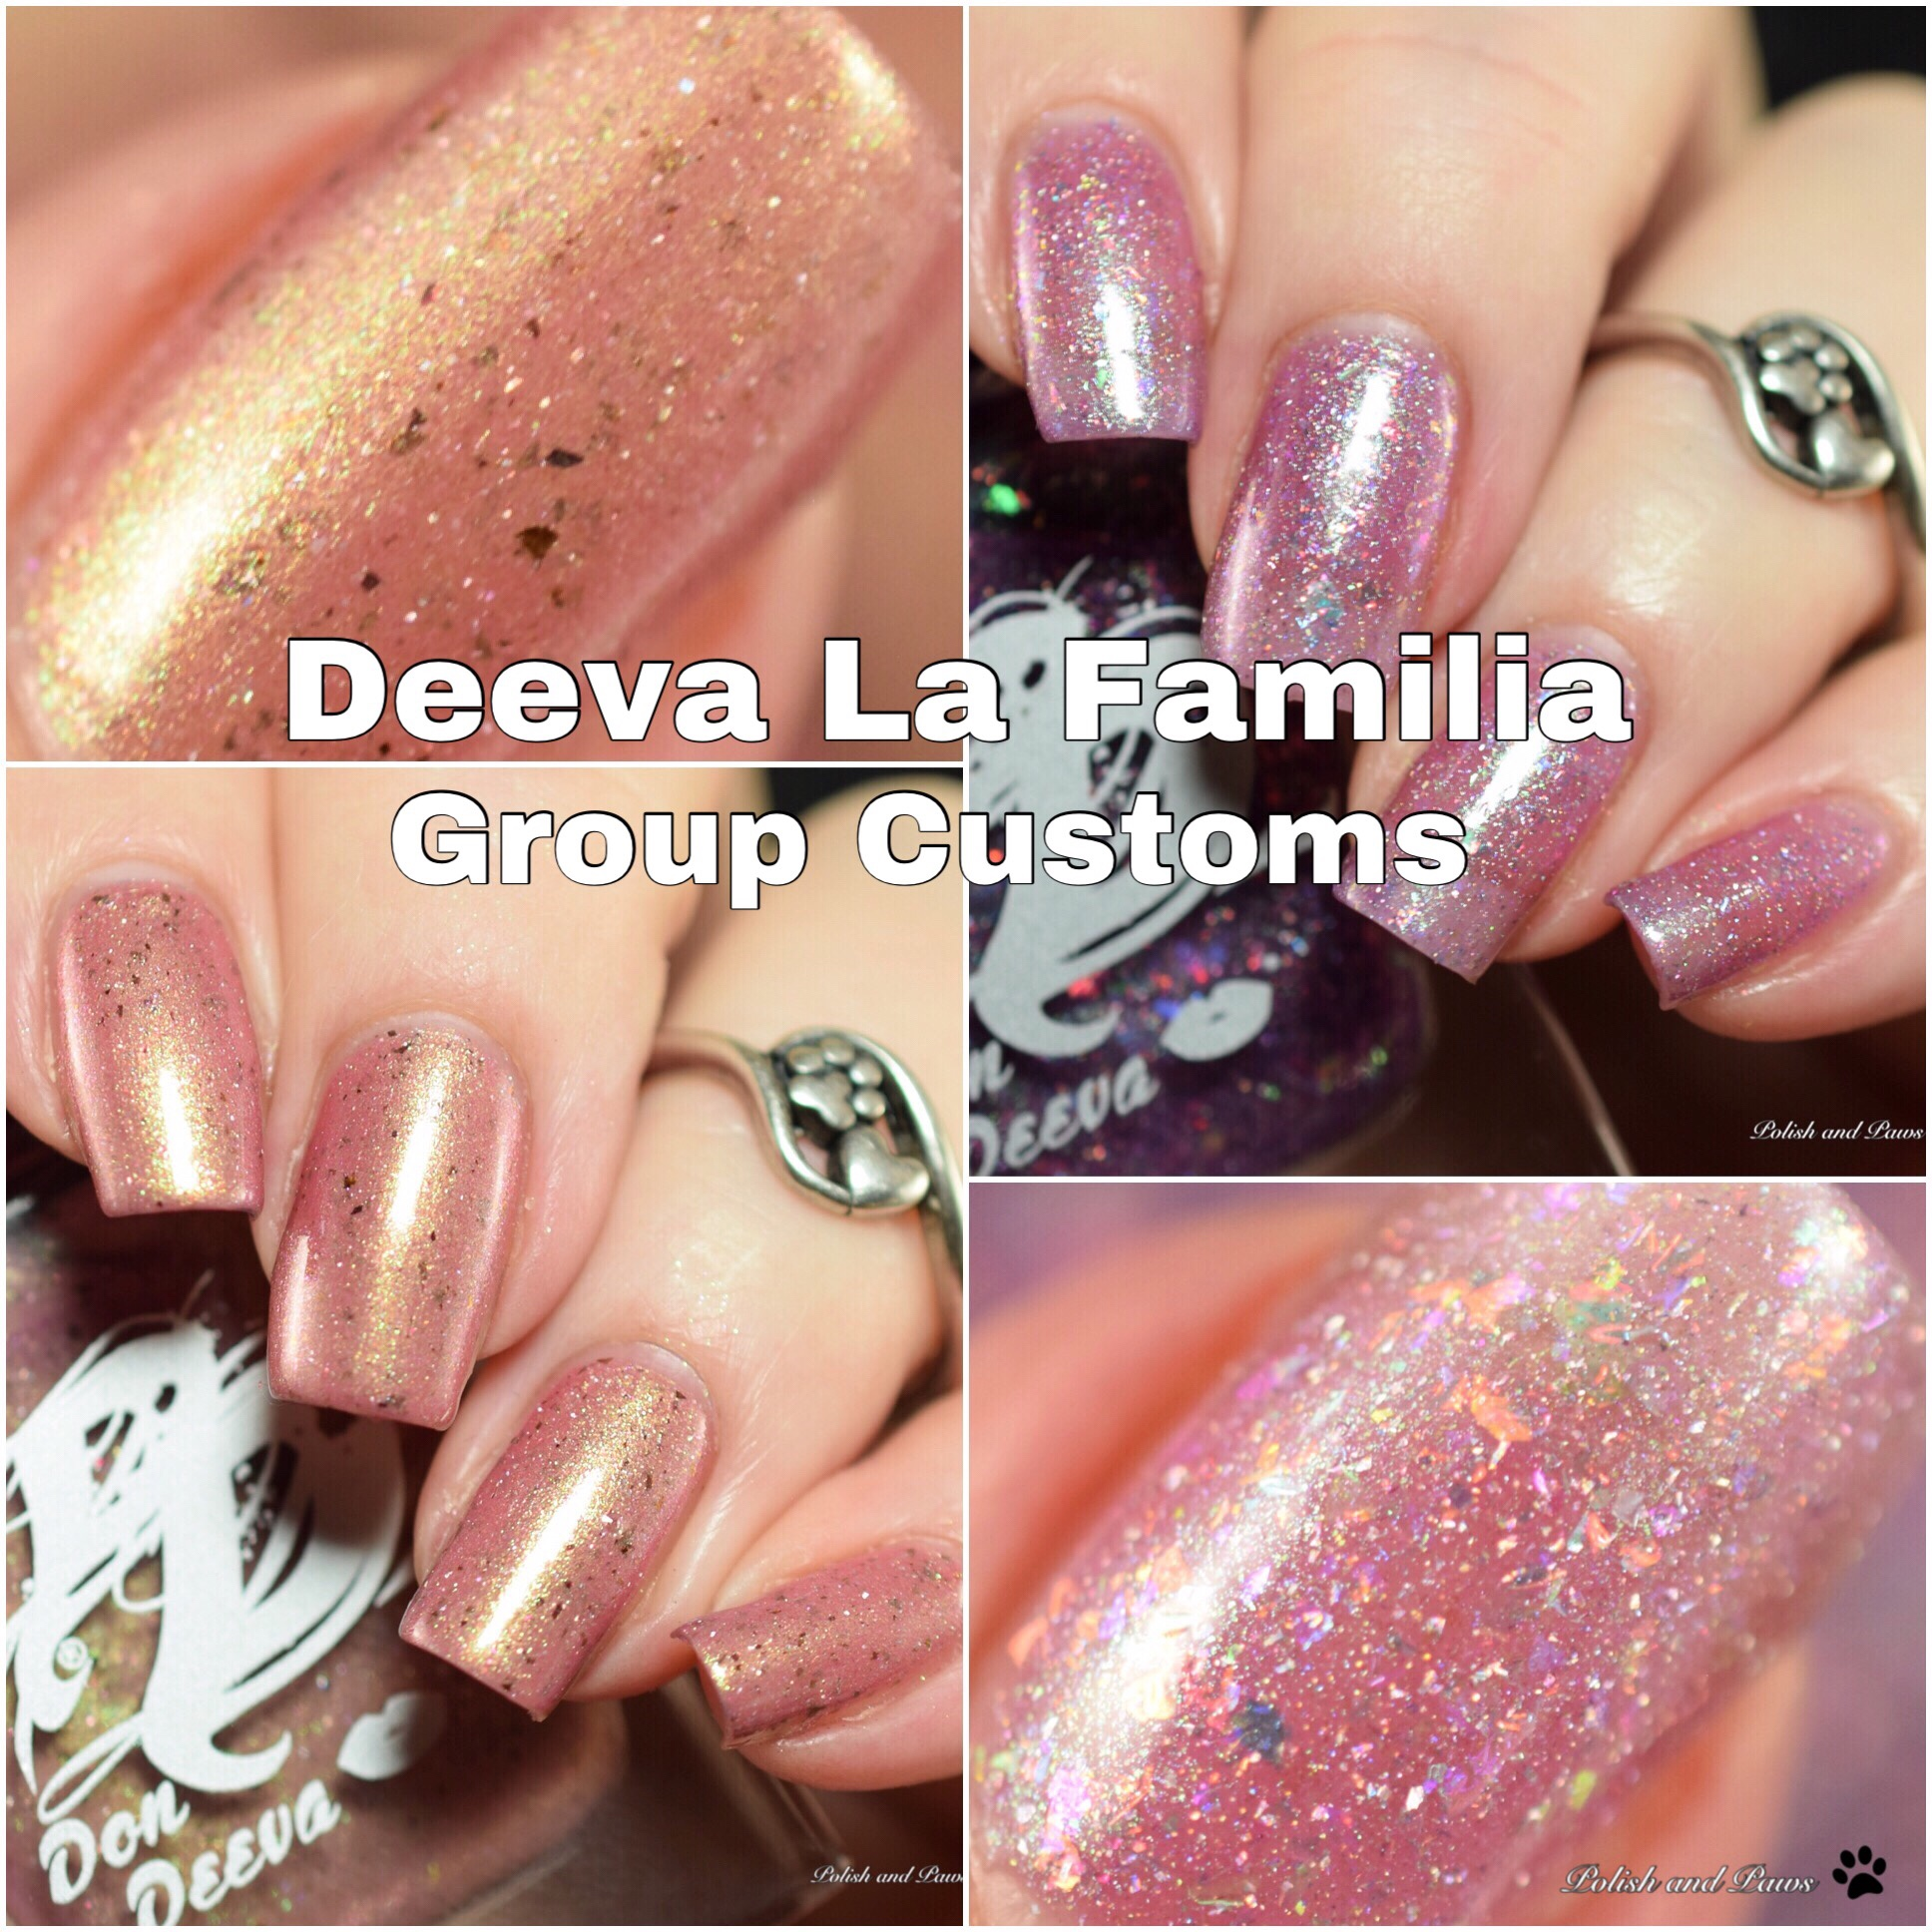 Don Deeva Group Customs